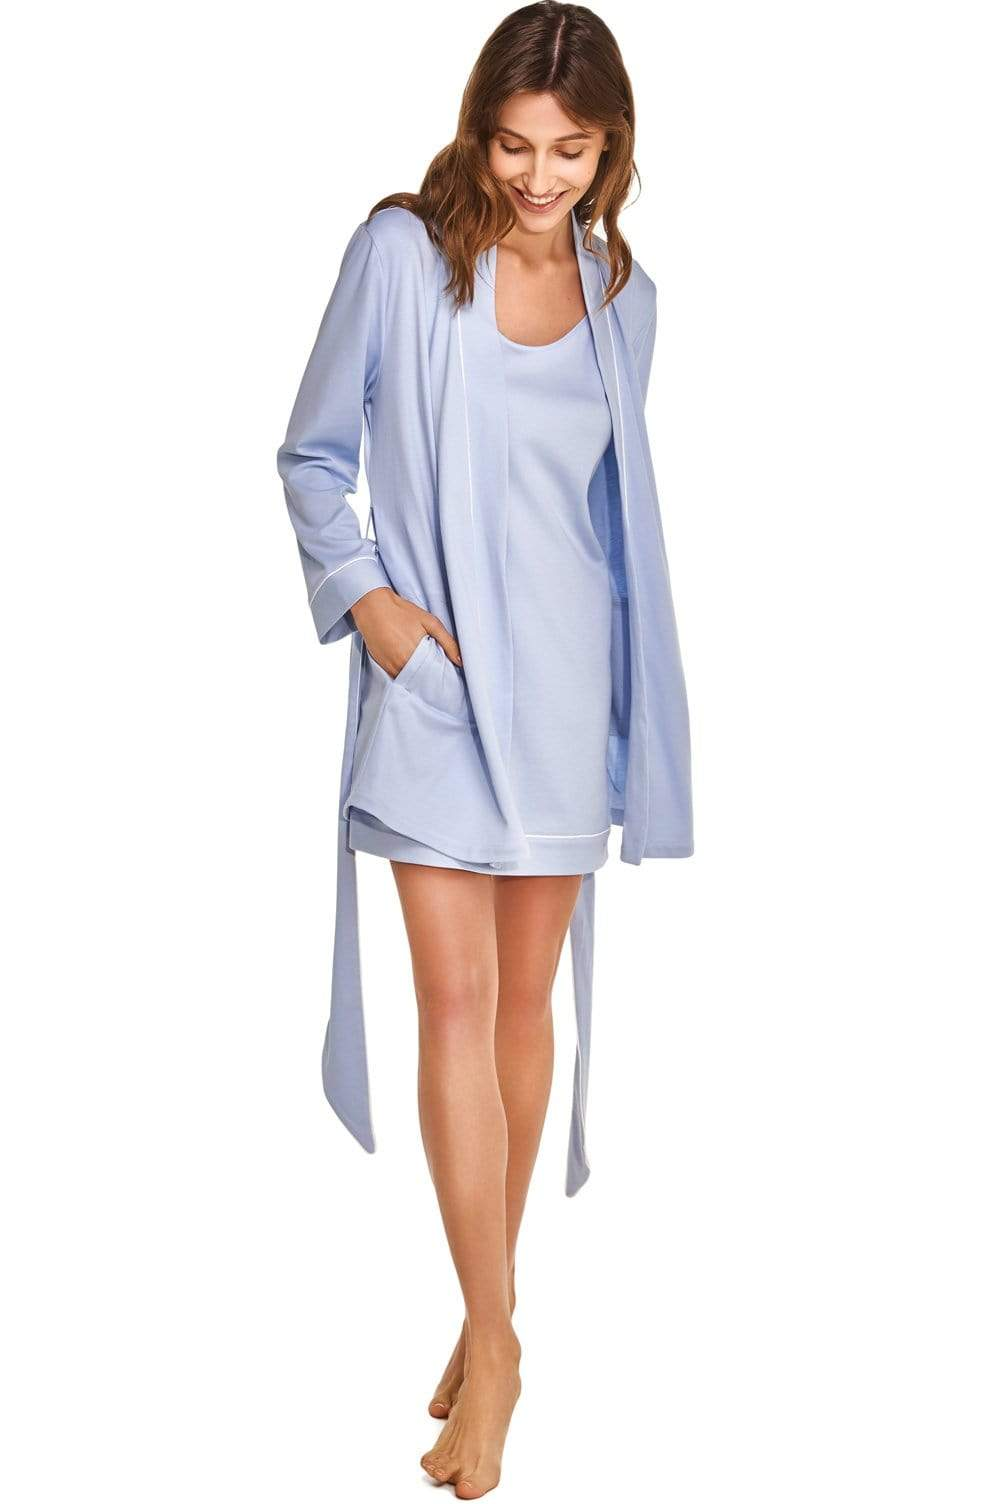 Slow Nature® Essentials Sleep & Loungewear Women's Night Dress in Organic Luxury Cotton. sustainable fashion ethical fashion